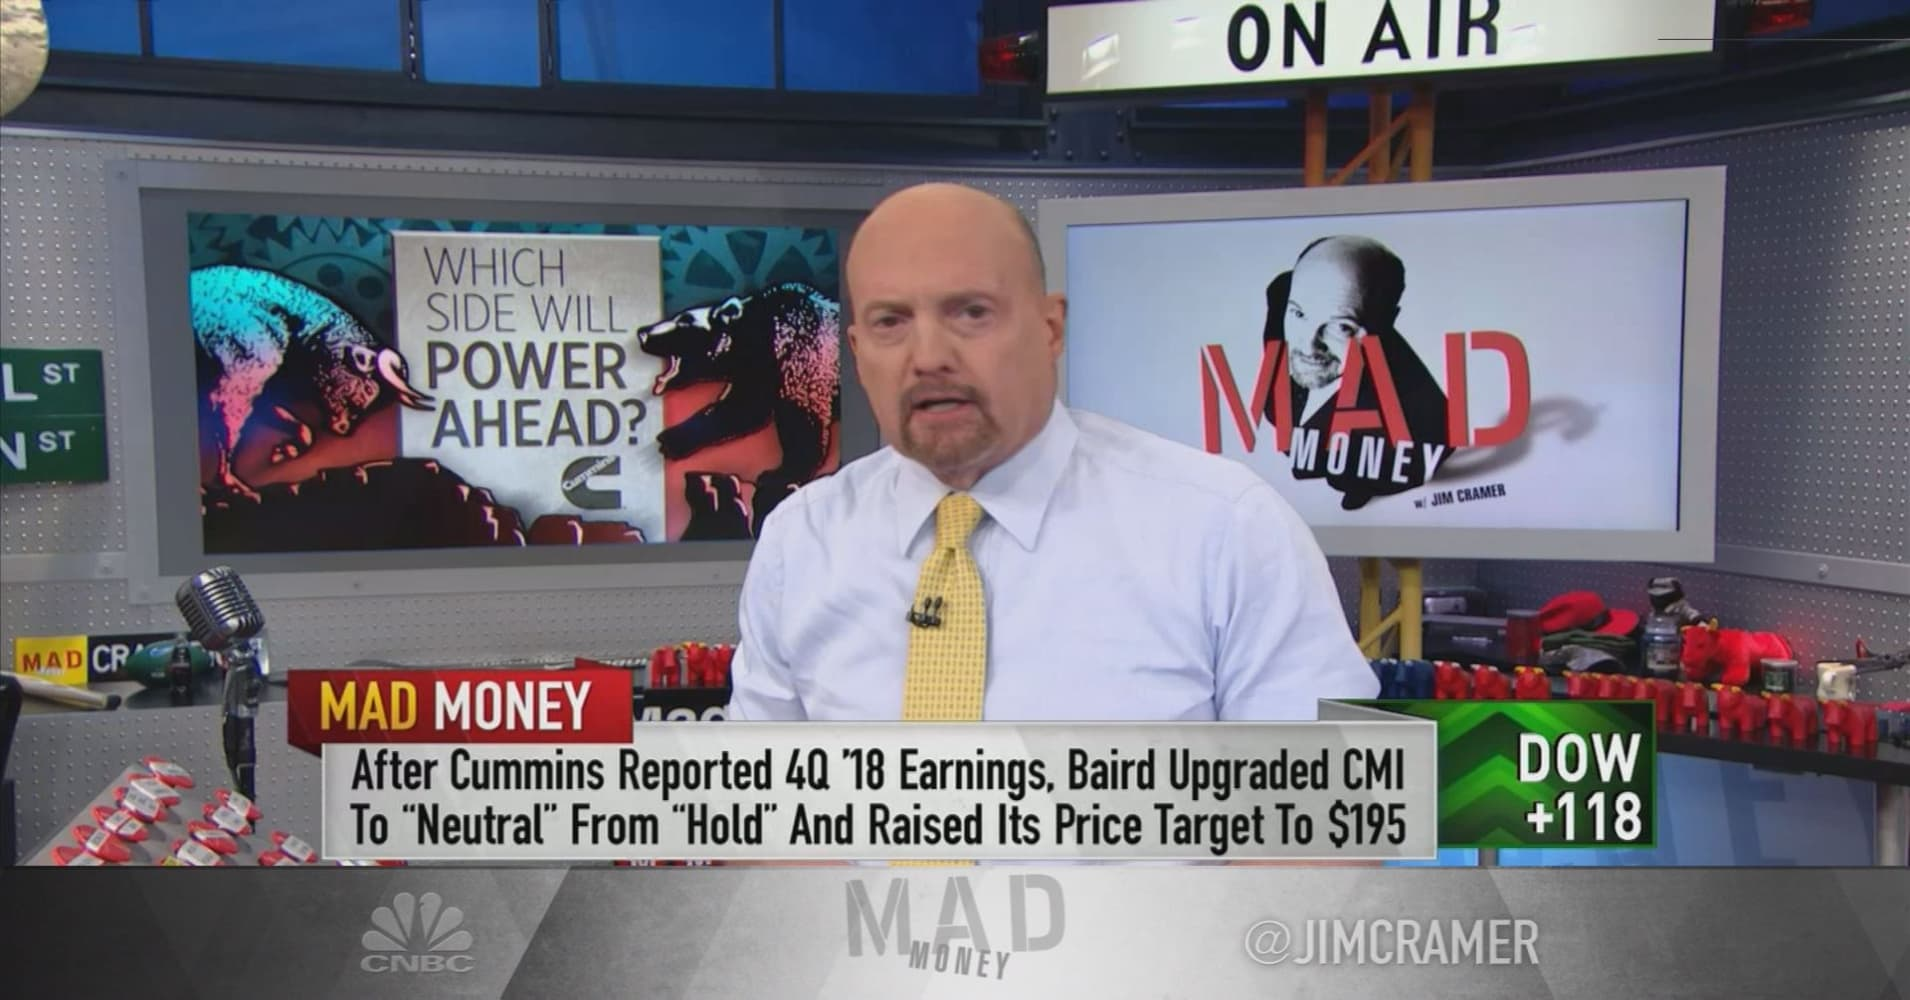 Bulls win in bull-bear battle over Cummins, Cramer says